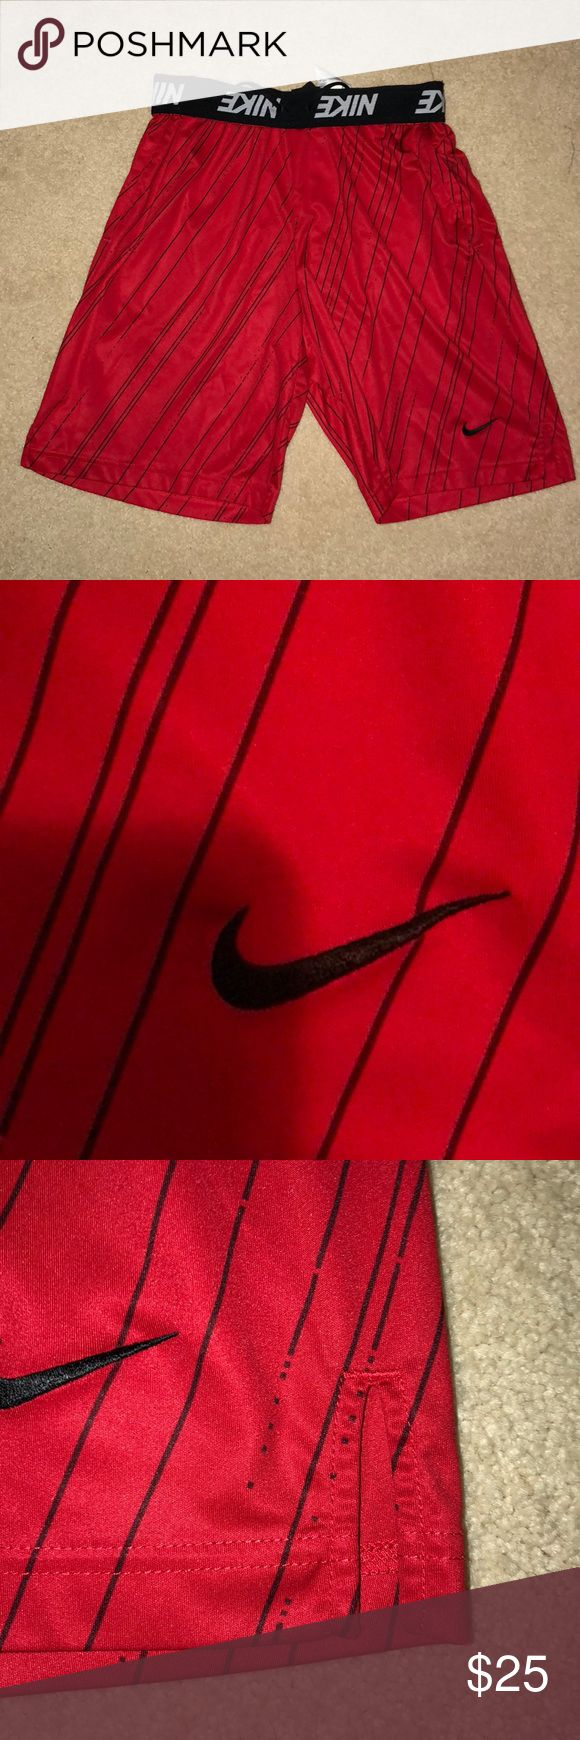 Nike Basketball Shorts Men's Nike Basketball Shorts in red, size medium brand new without tags. Perfect condition. Men's running, Nike running, Nike running shorts, running shorts. Nike Shorts Athletic